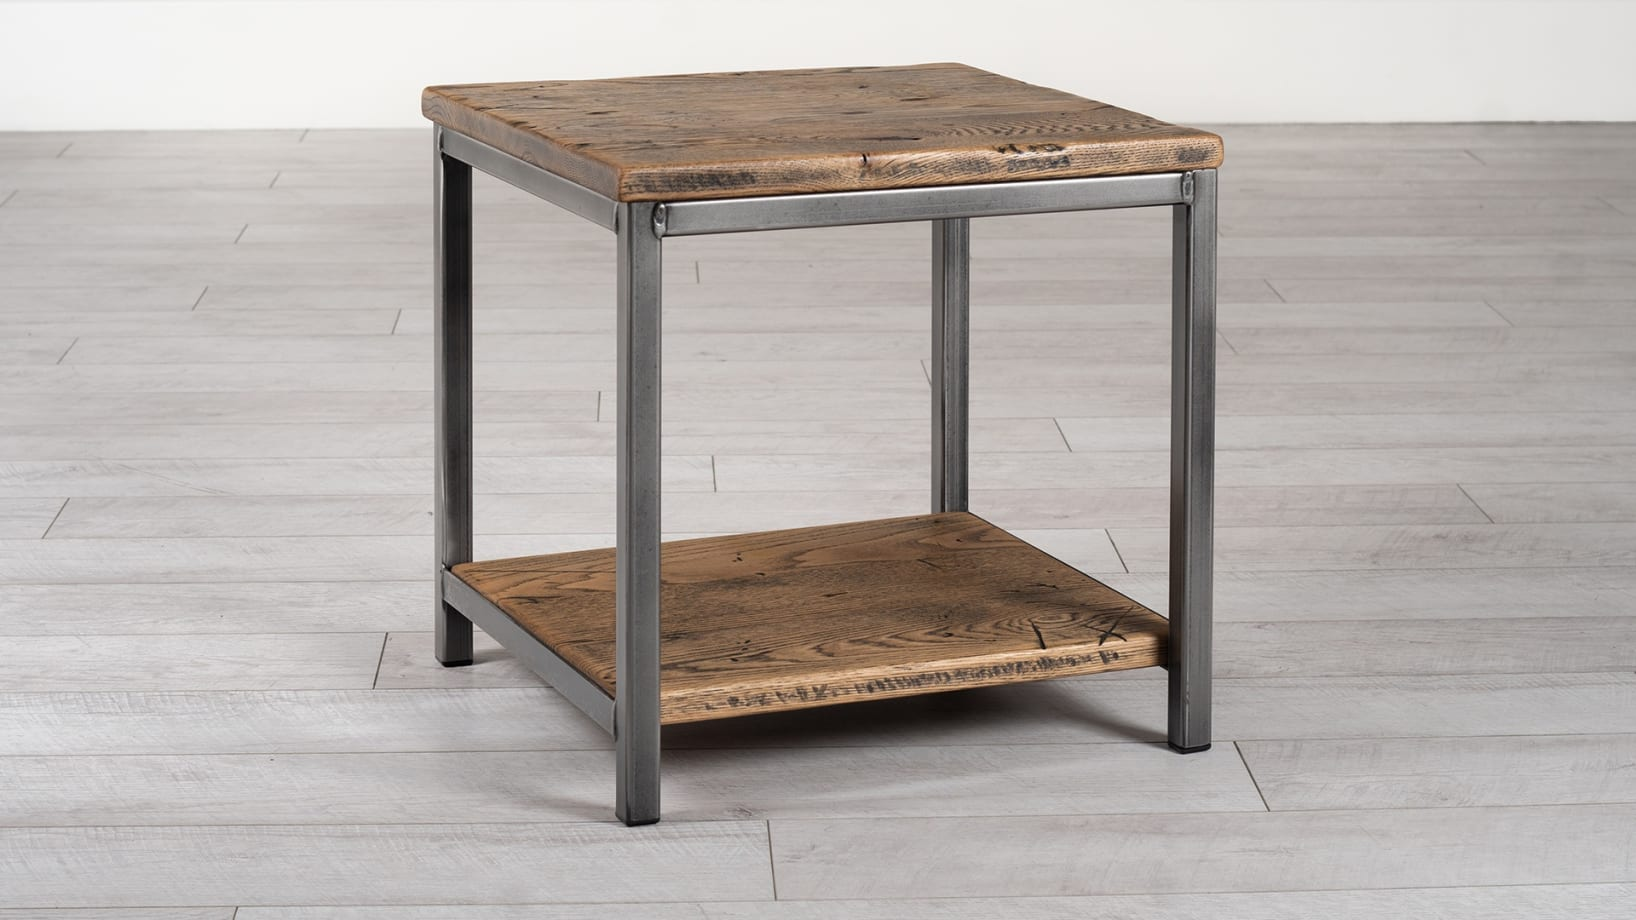 The Warehouse Side Table